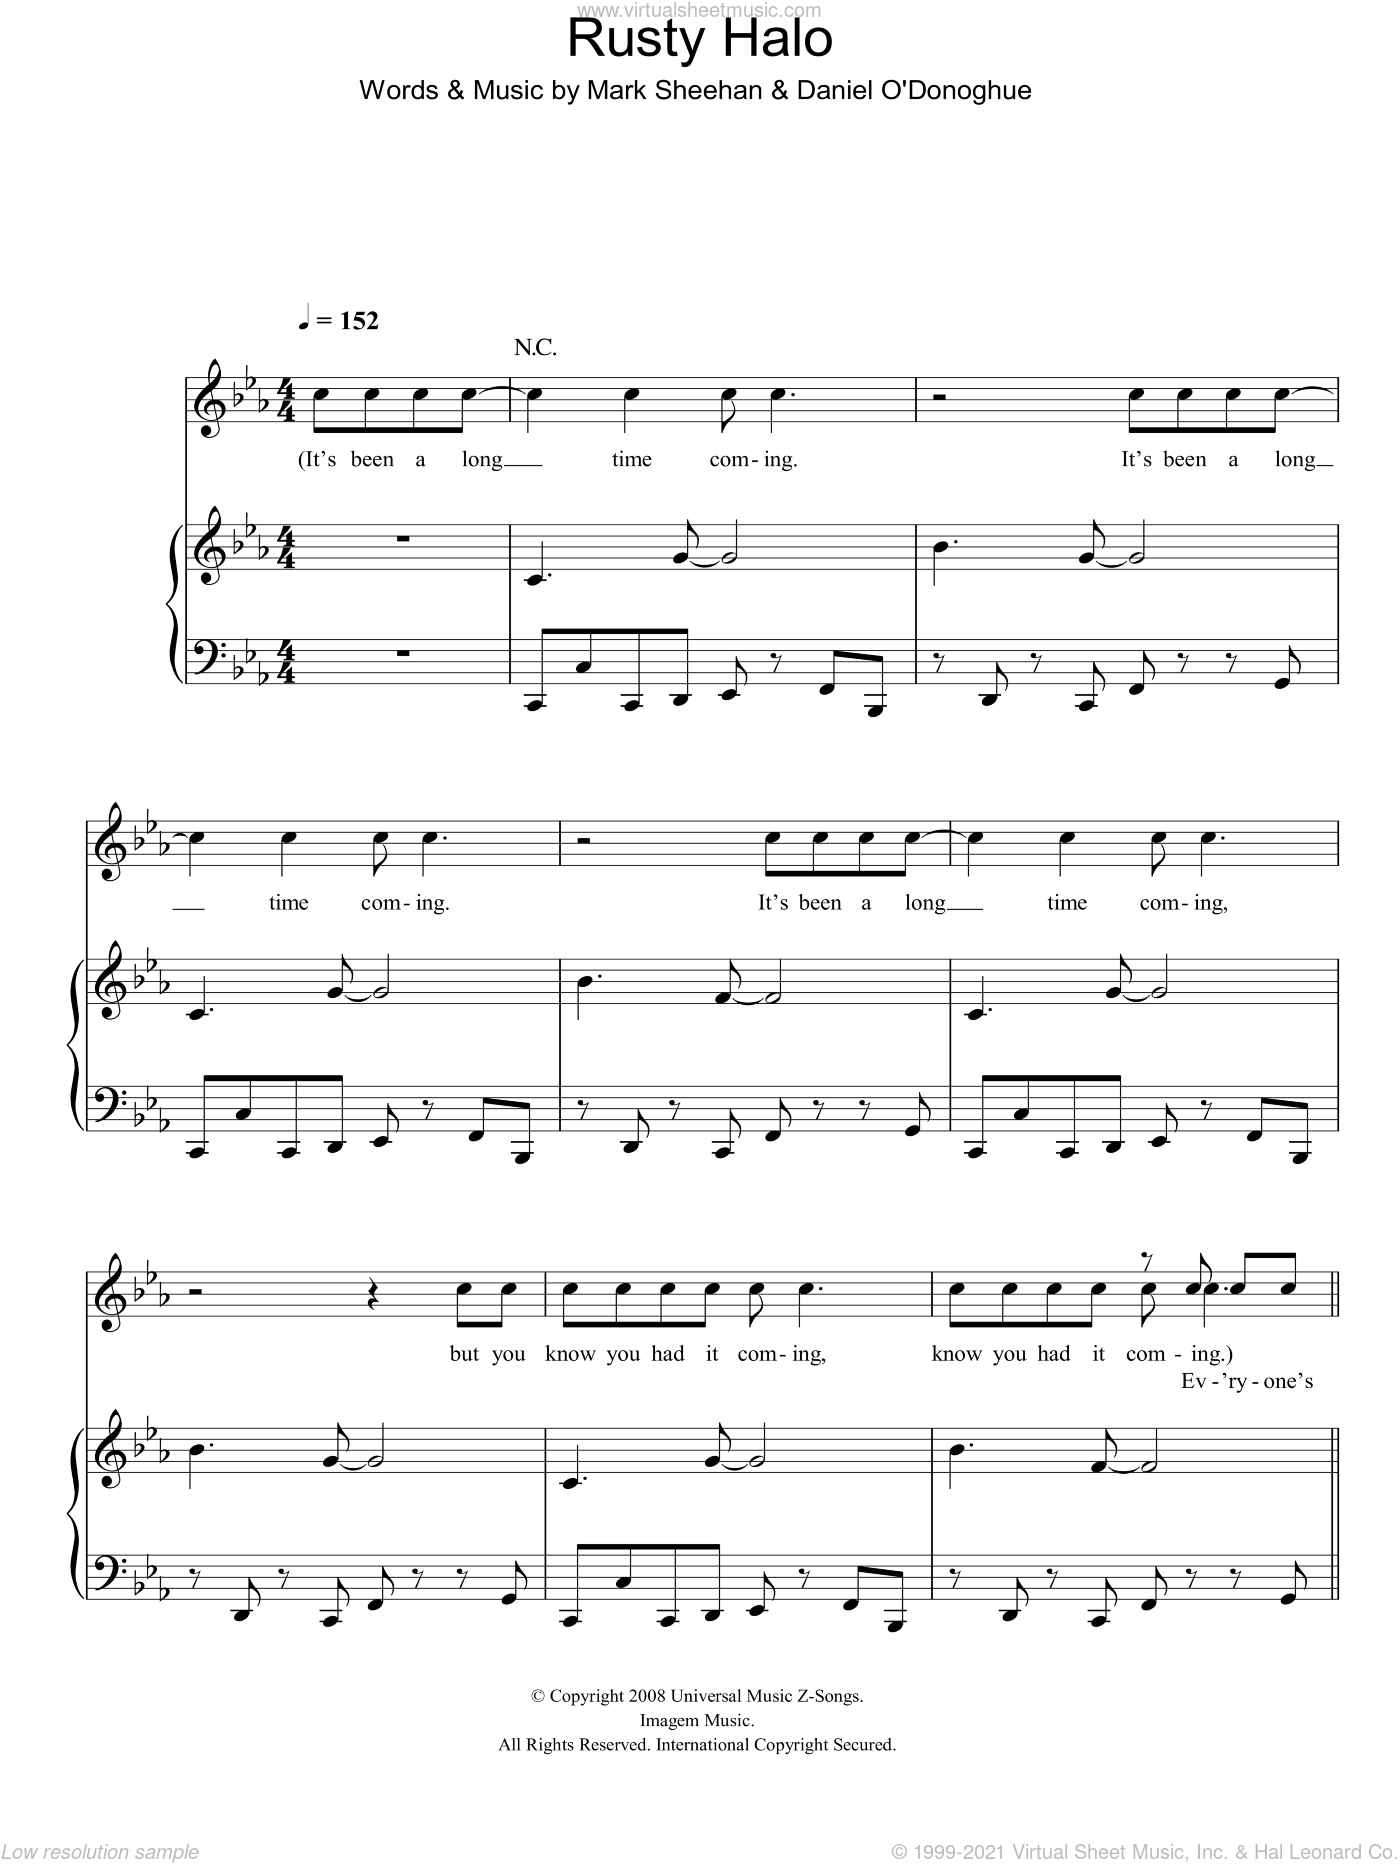 Rusty Halo sheet music for voice, piano or guitar by Daniel O'Donoghue, The Script and Mark Sheehan. Score Image Preview.